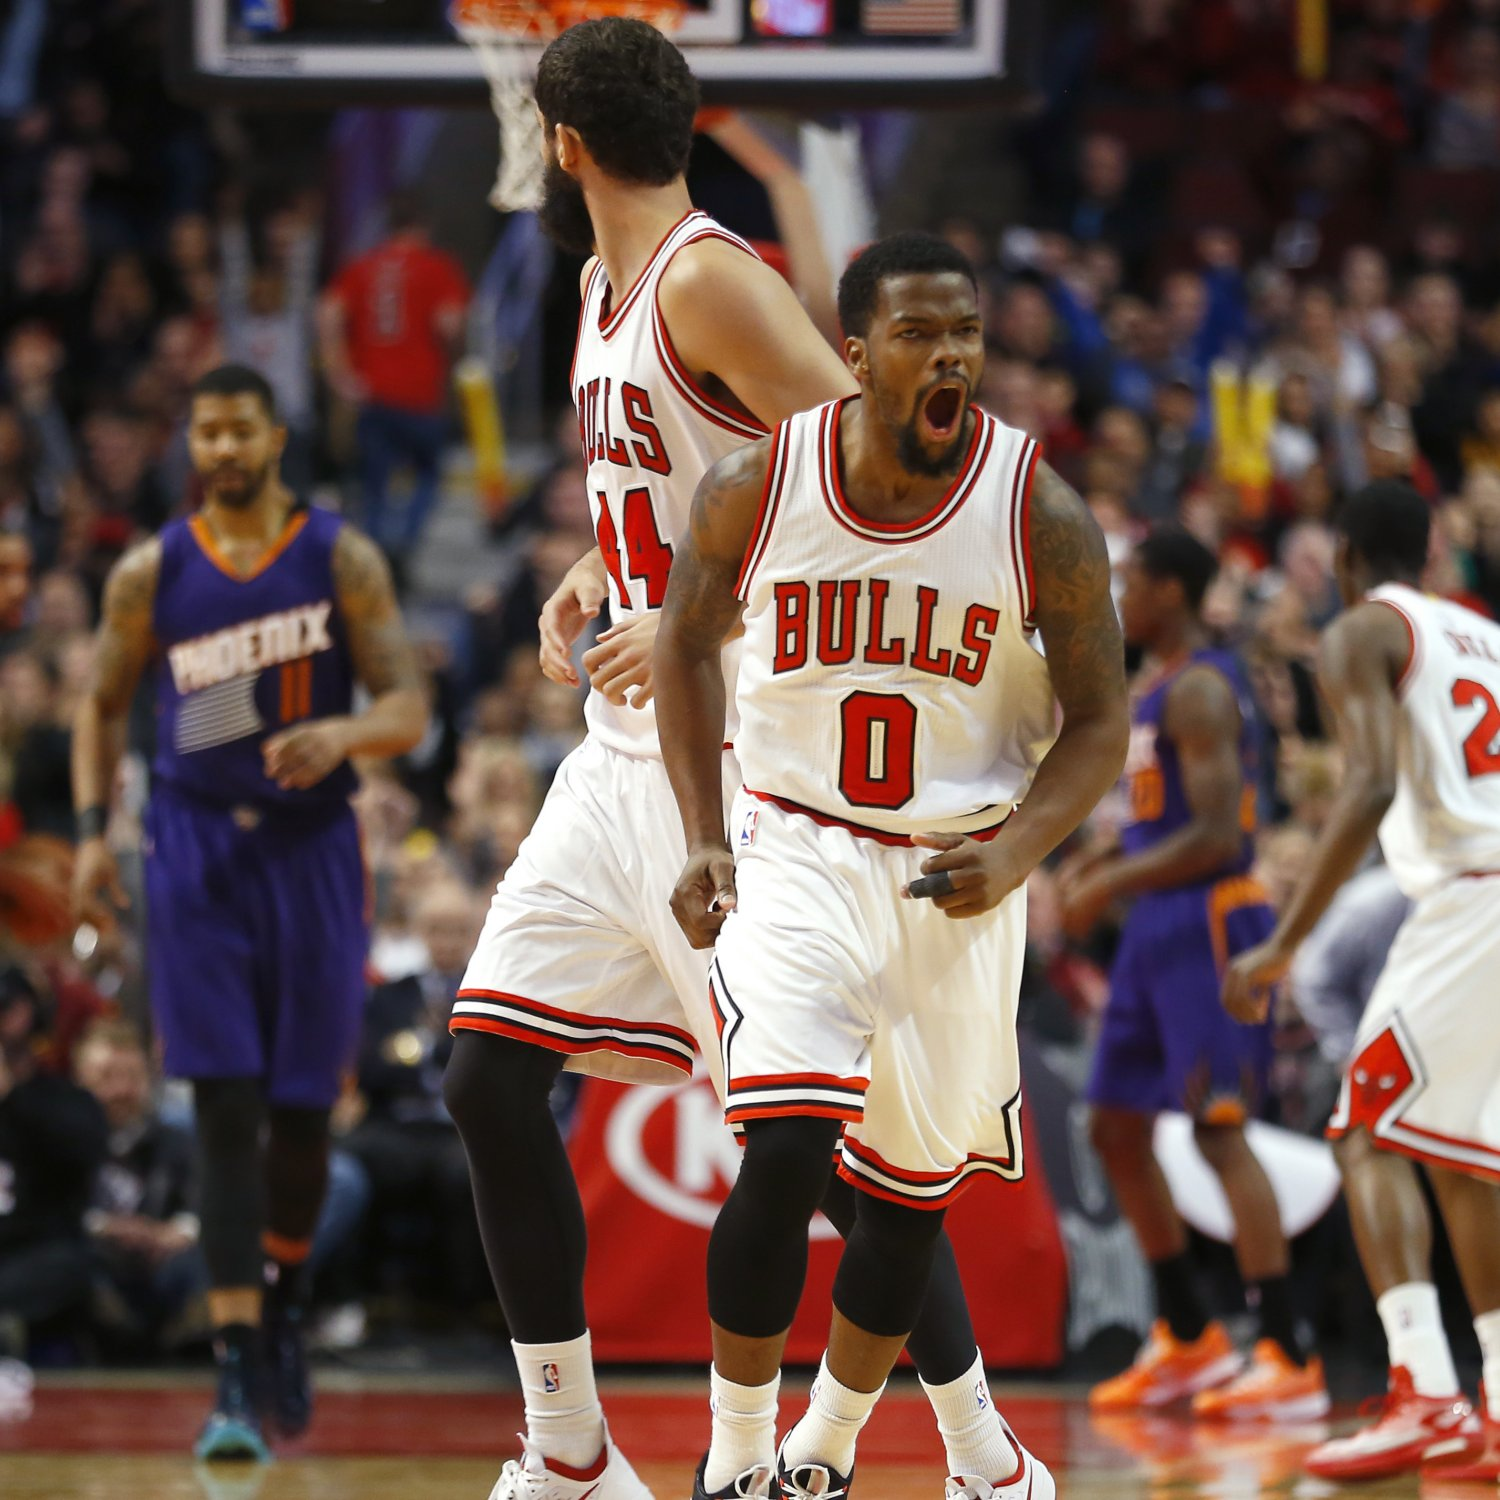 Warriors Bulls Live Stream Free: Phoenix Suns Vs. Chicago Bulls 2/21/15: Video Highlights